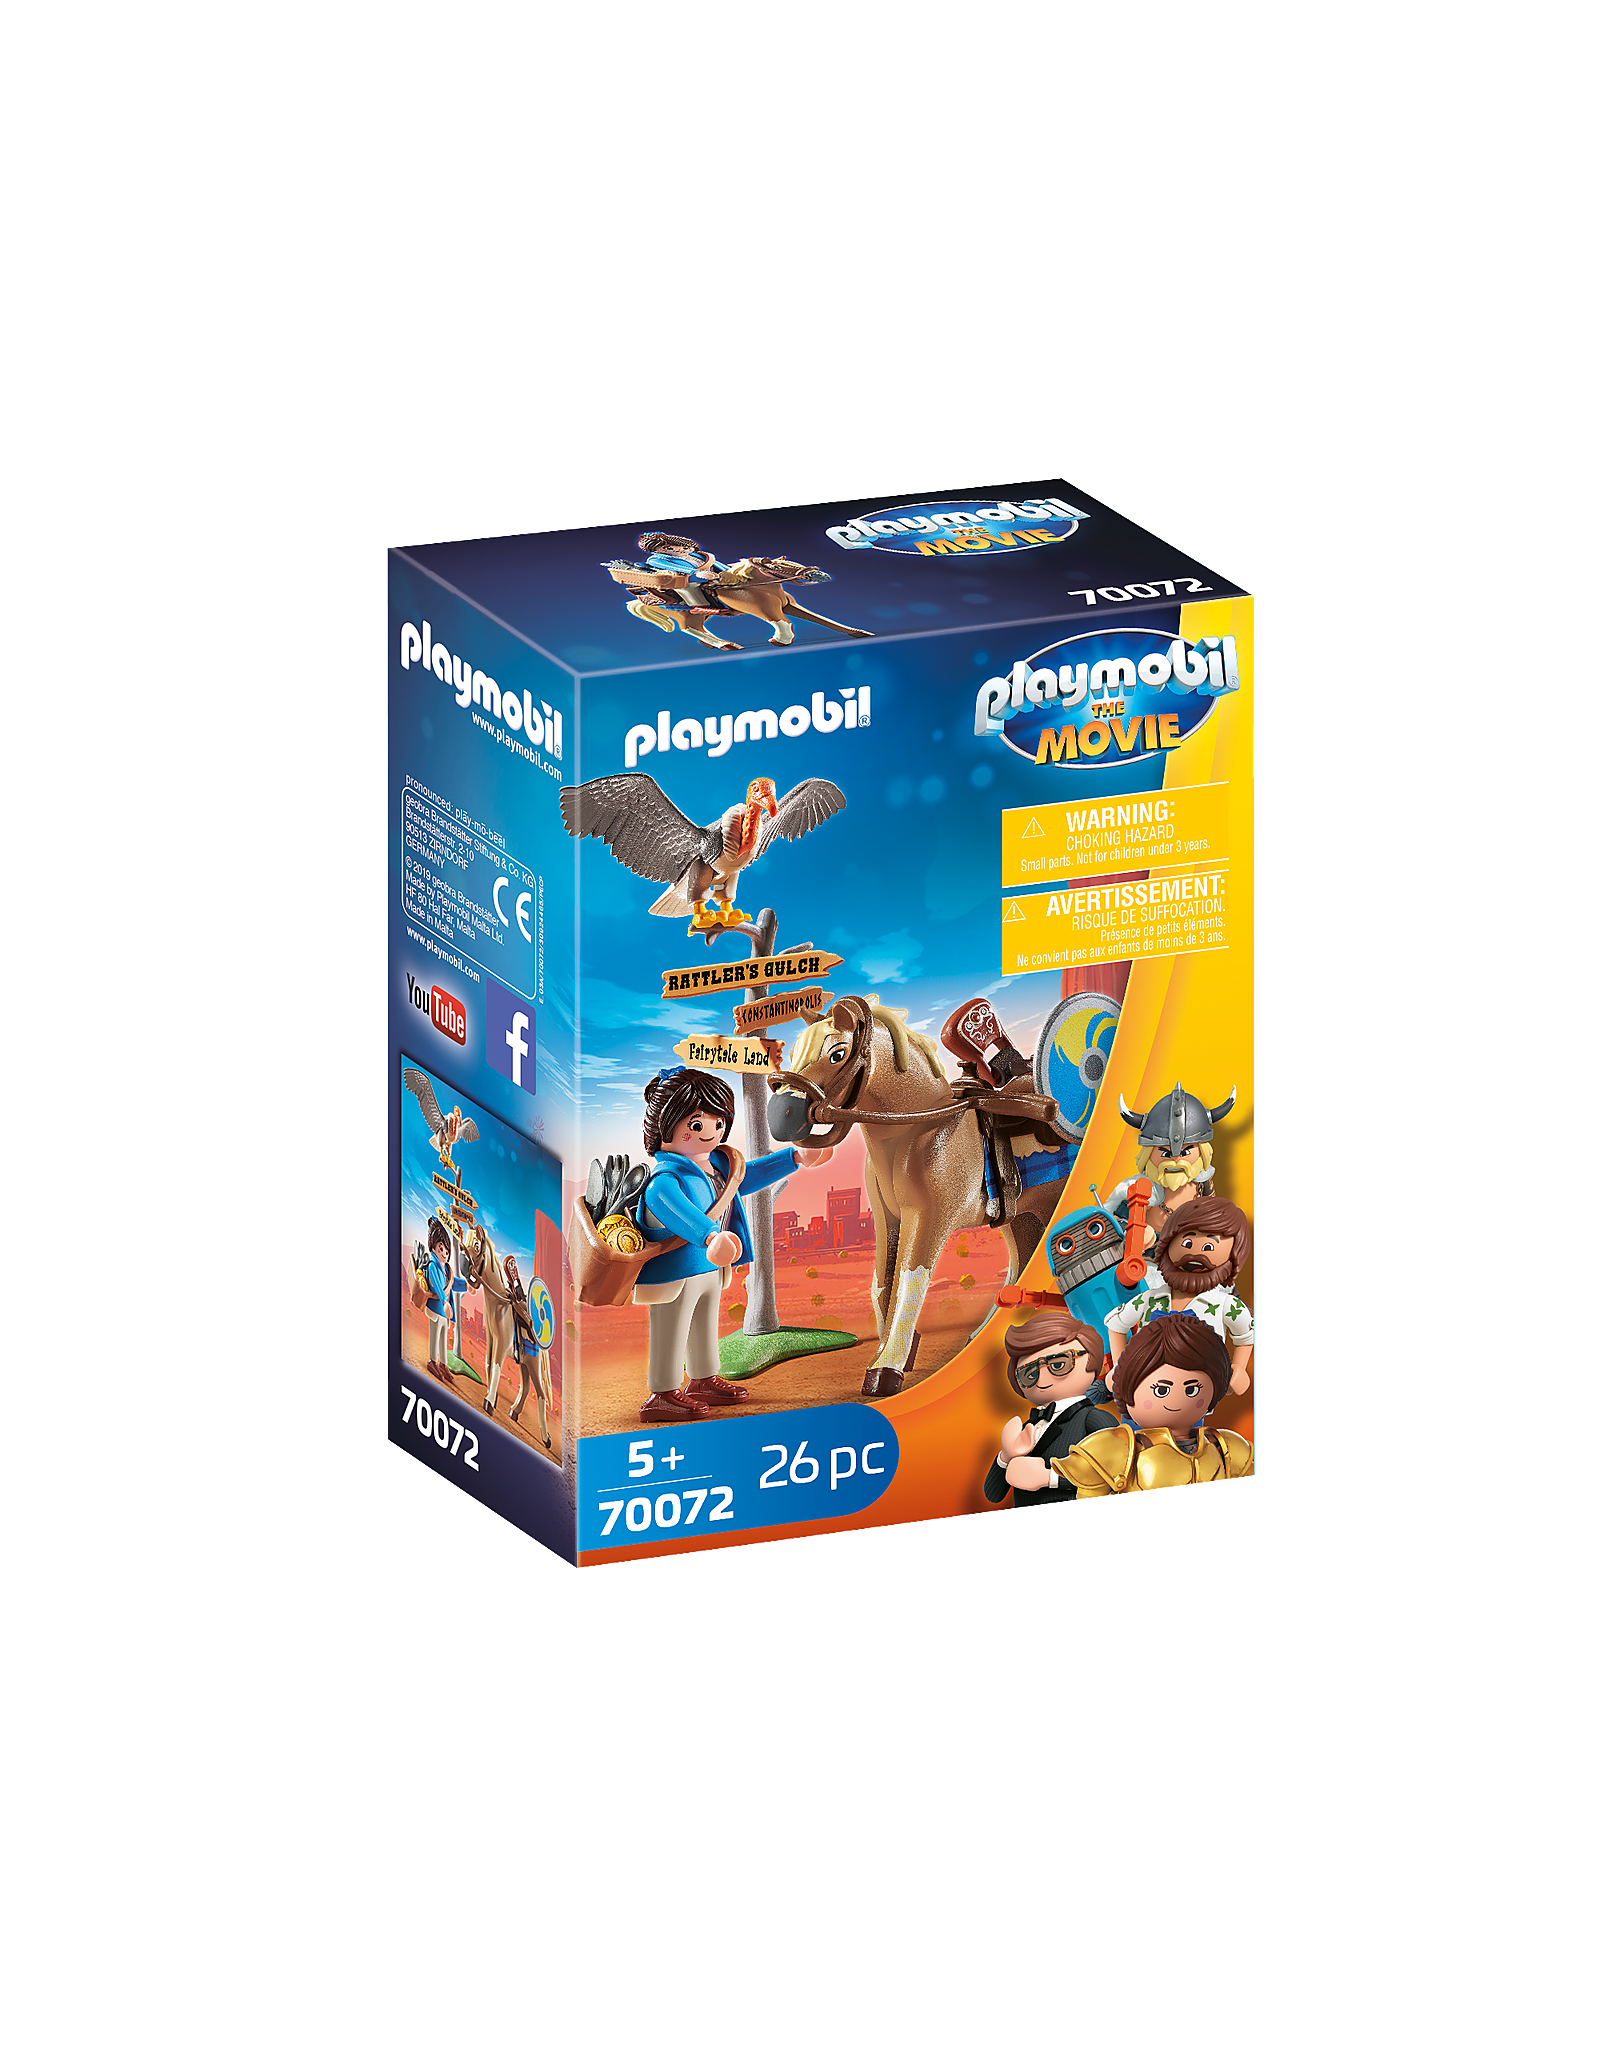 Playmobil Playmobil The Movie Marla With Horse